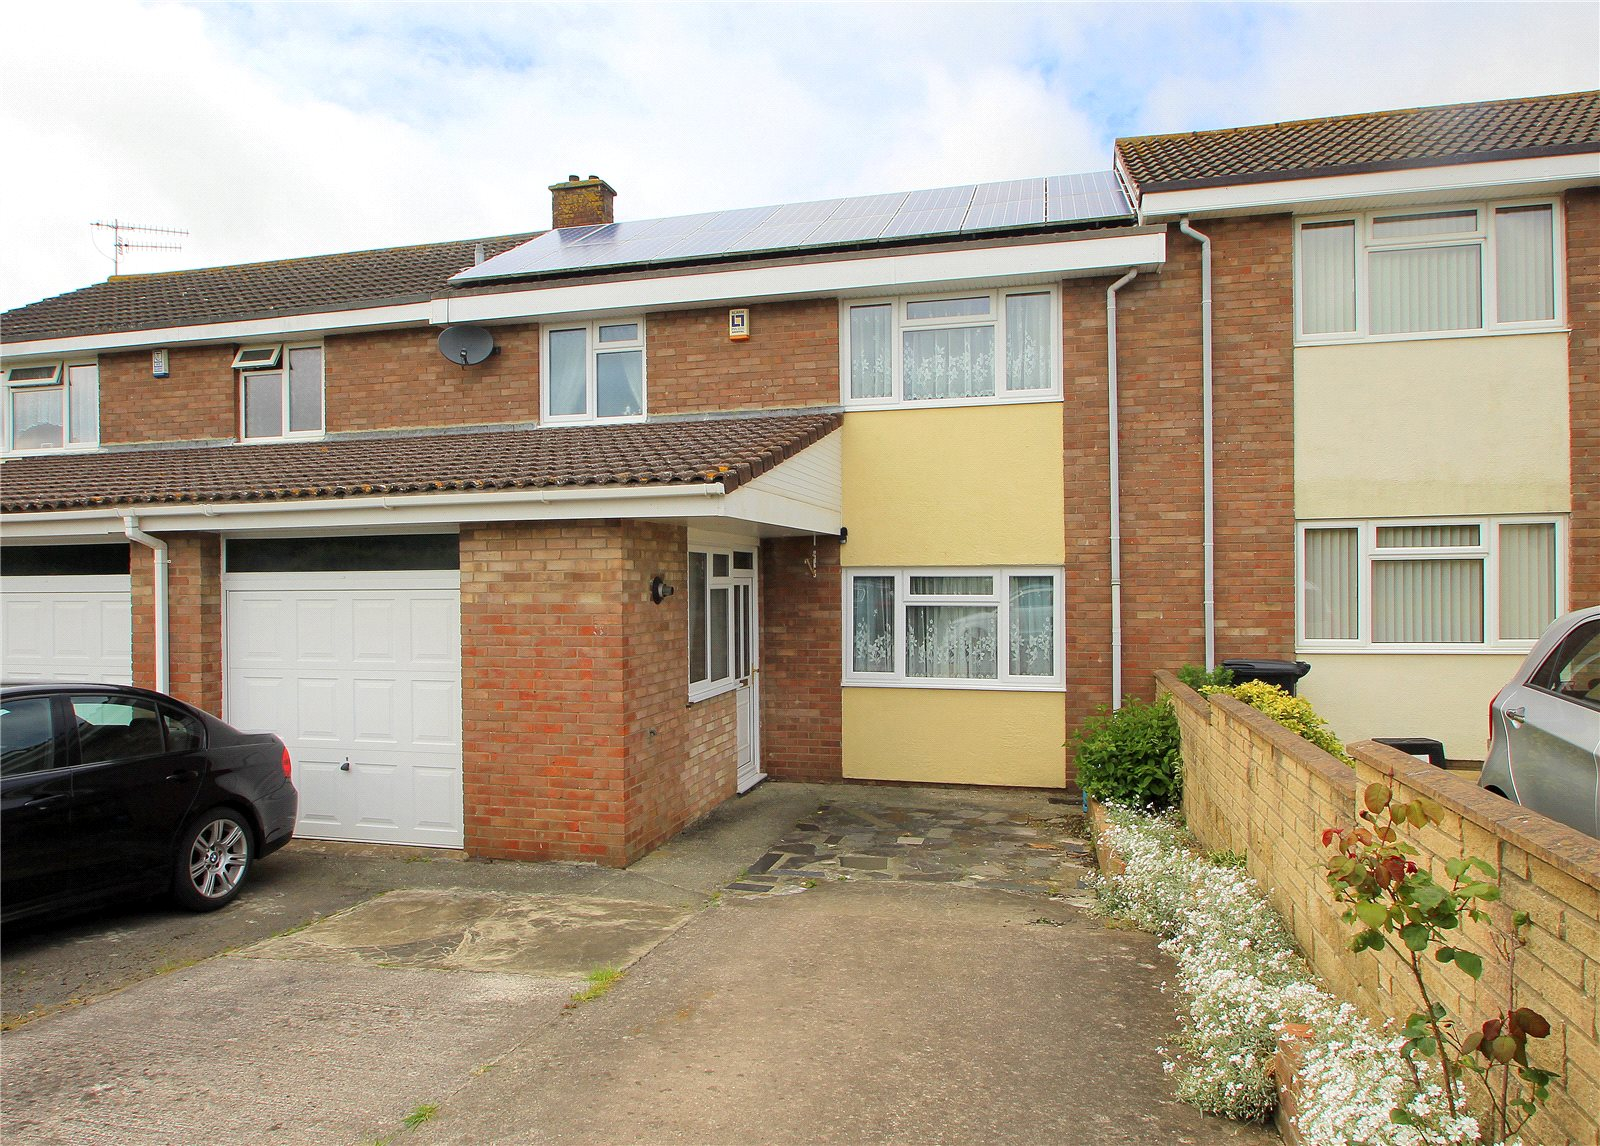 3 Bedrooms Terraced House for sale in Rosemere Gardens Uplands Bristol BS13